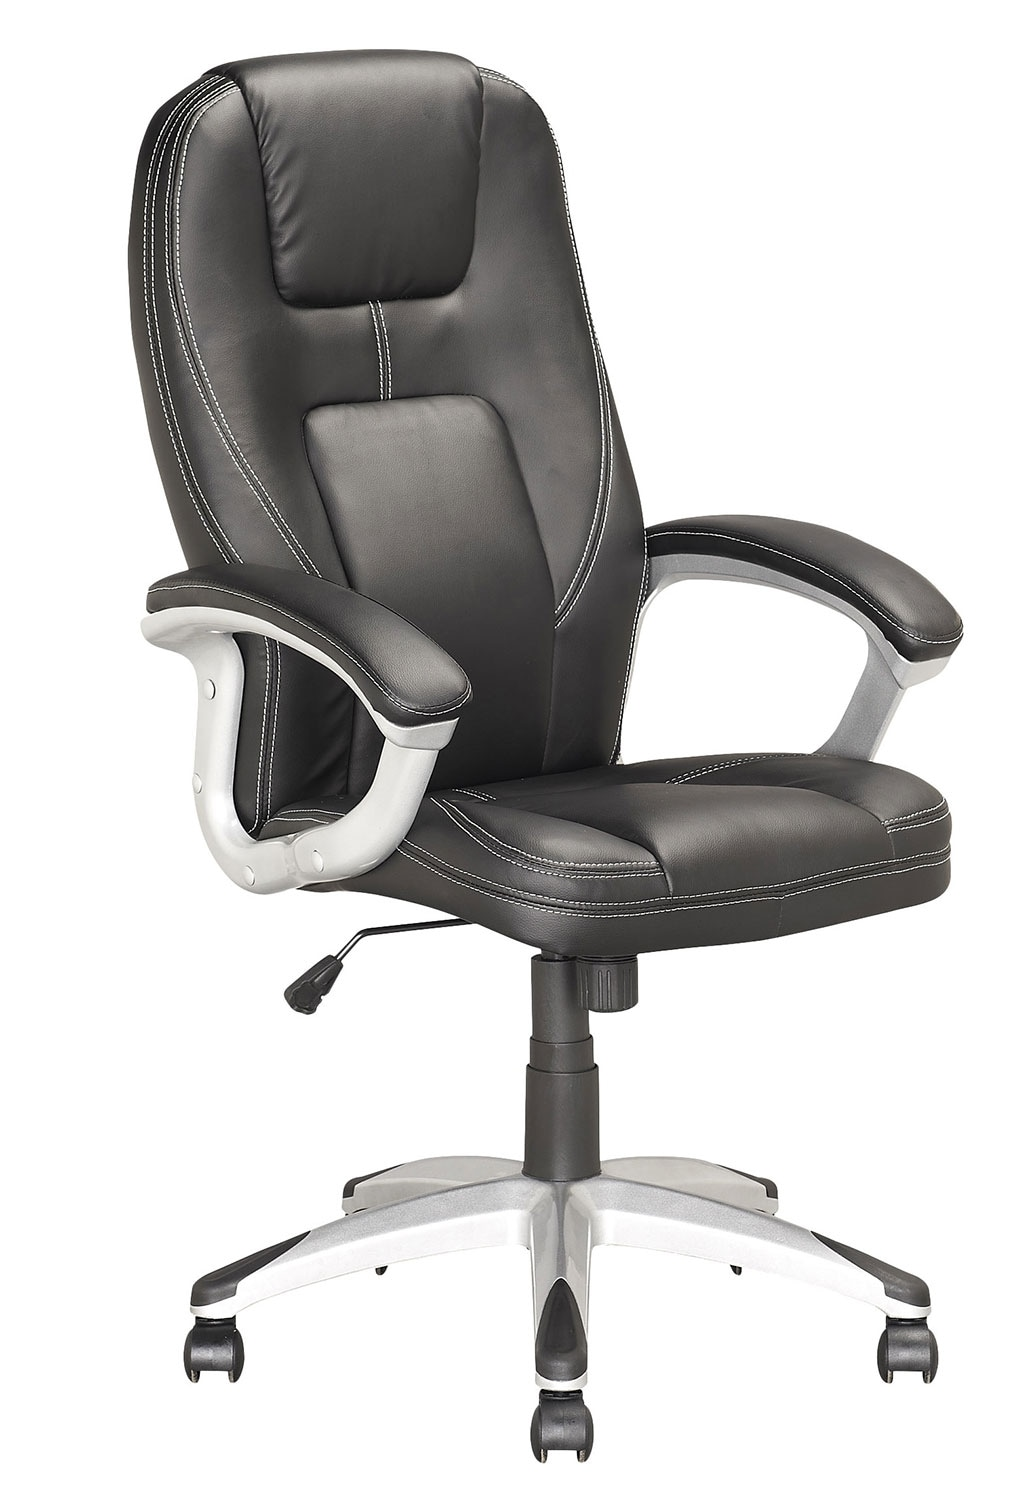 Home Office Furniture - Henderson Foam-Padded Leatherette Executive Office Chair